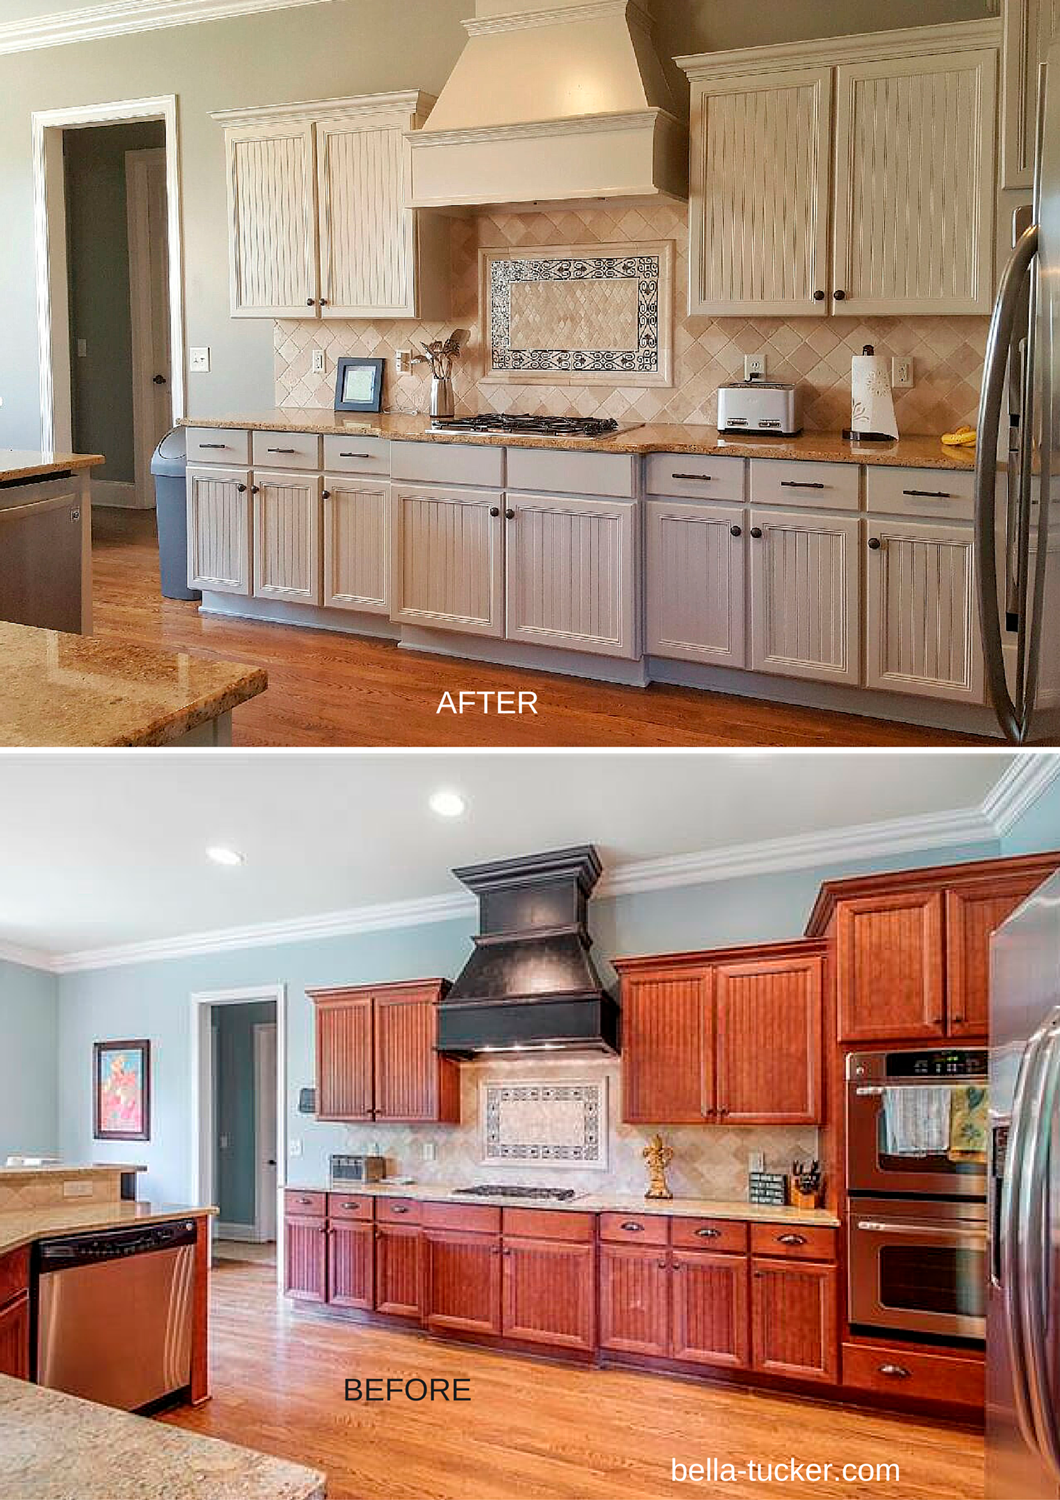 Kitchen Cabinet Painting Franklin Tn Before And After Painting Kitchen Cabinets Kitchen Cabinets Painted Before And After Kitchen Cabinets Before And After